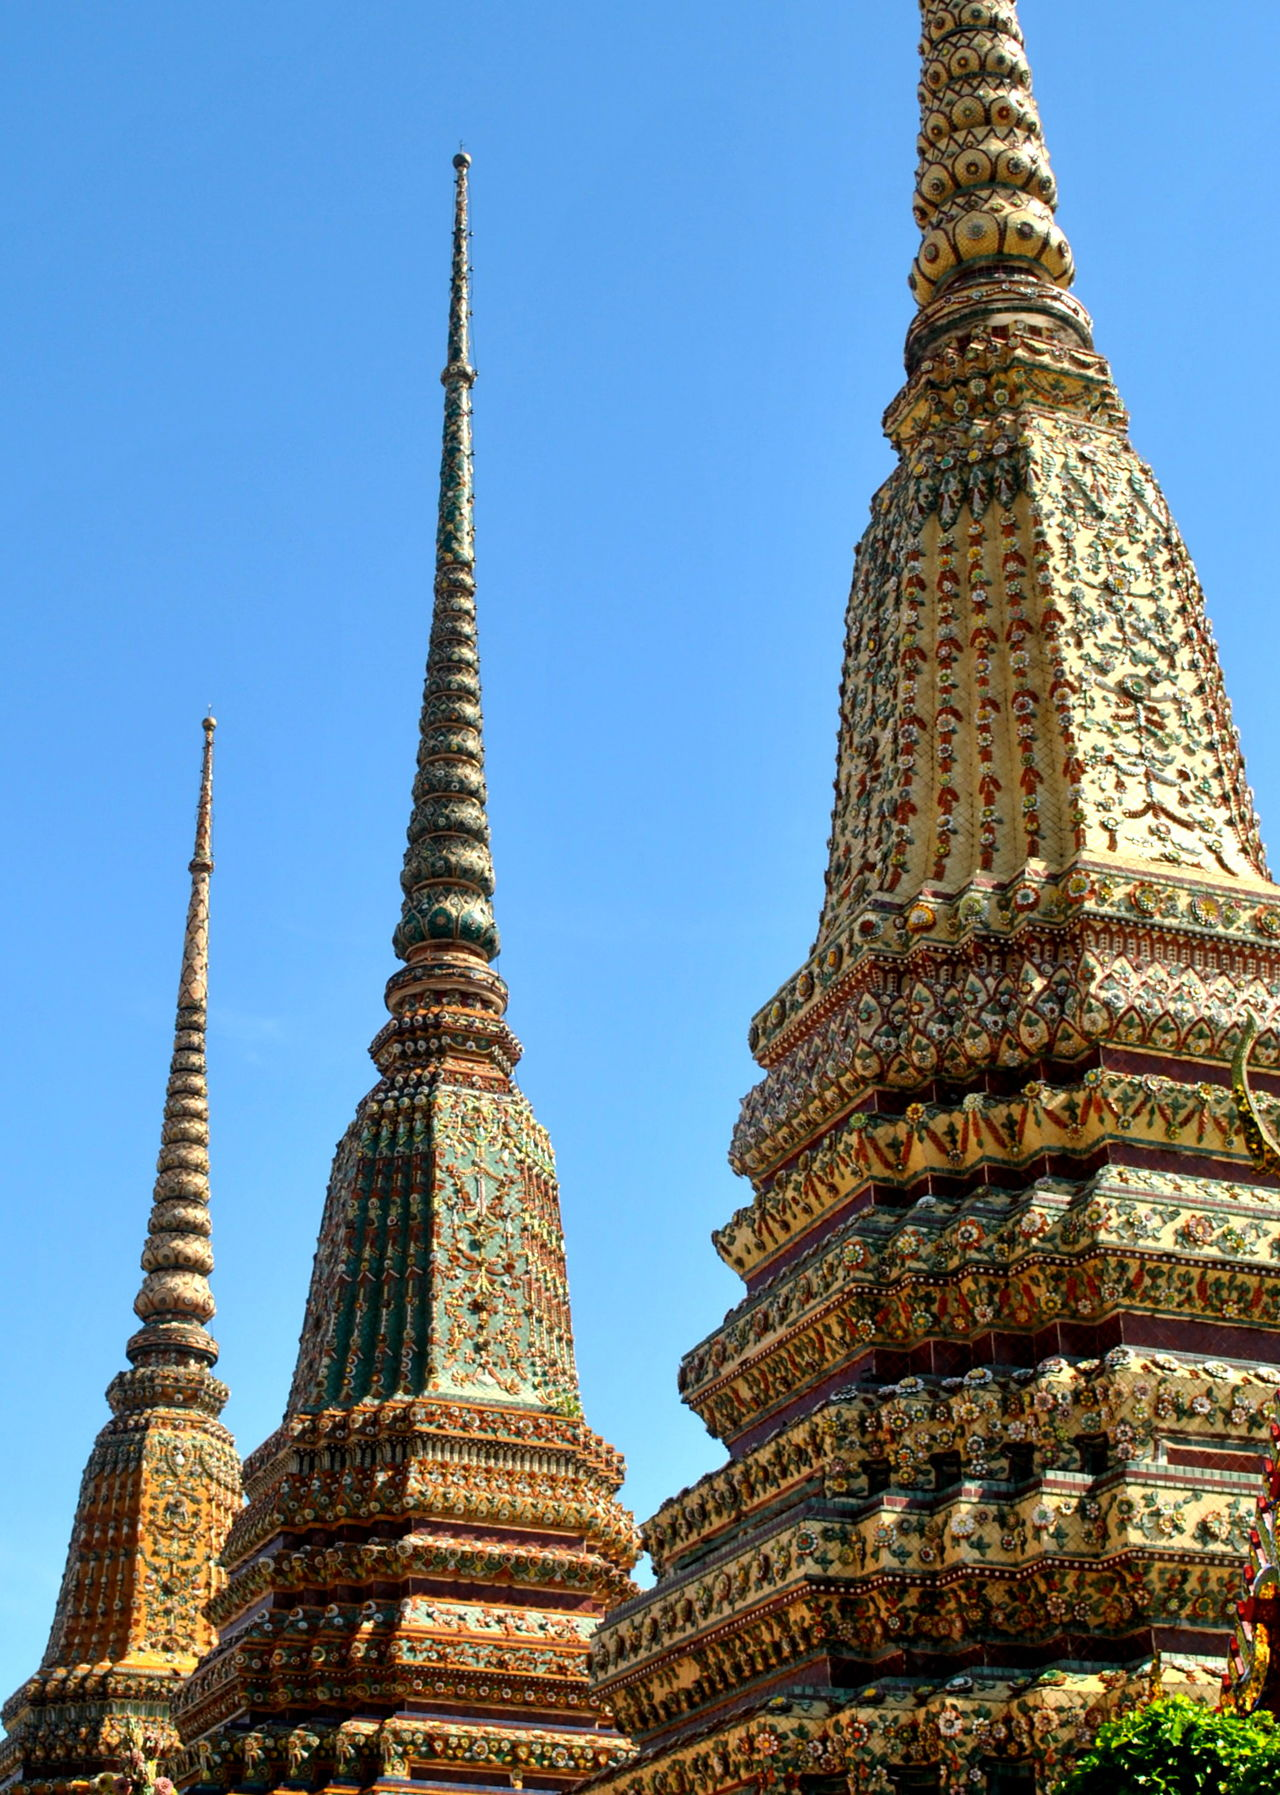 Wat Pho Architecture Bangkok Bangkok City Bangkok Thailand. Blue Building Exterior Clear Sky Famous Place History International Landmark Place Of Worship Religion Spirituality Spotted In Thailand Temple Temple - Building Temple Architecture Thai Temple Thailand Thailand Attraction Tourism Tower Travel Travel Destinations Wat Pho